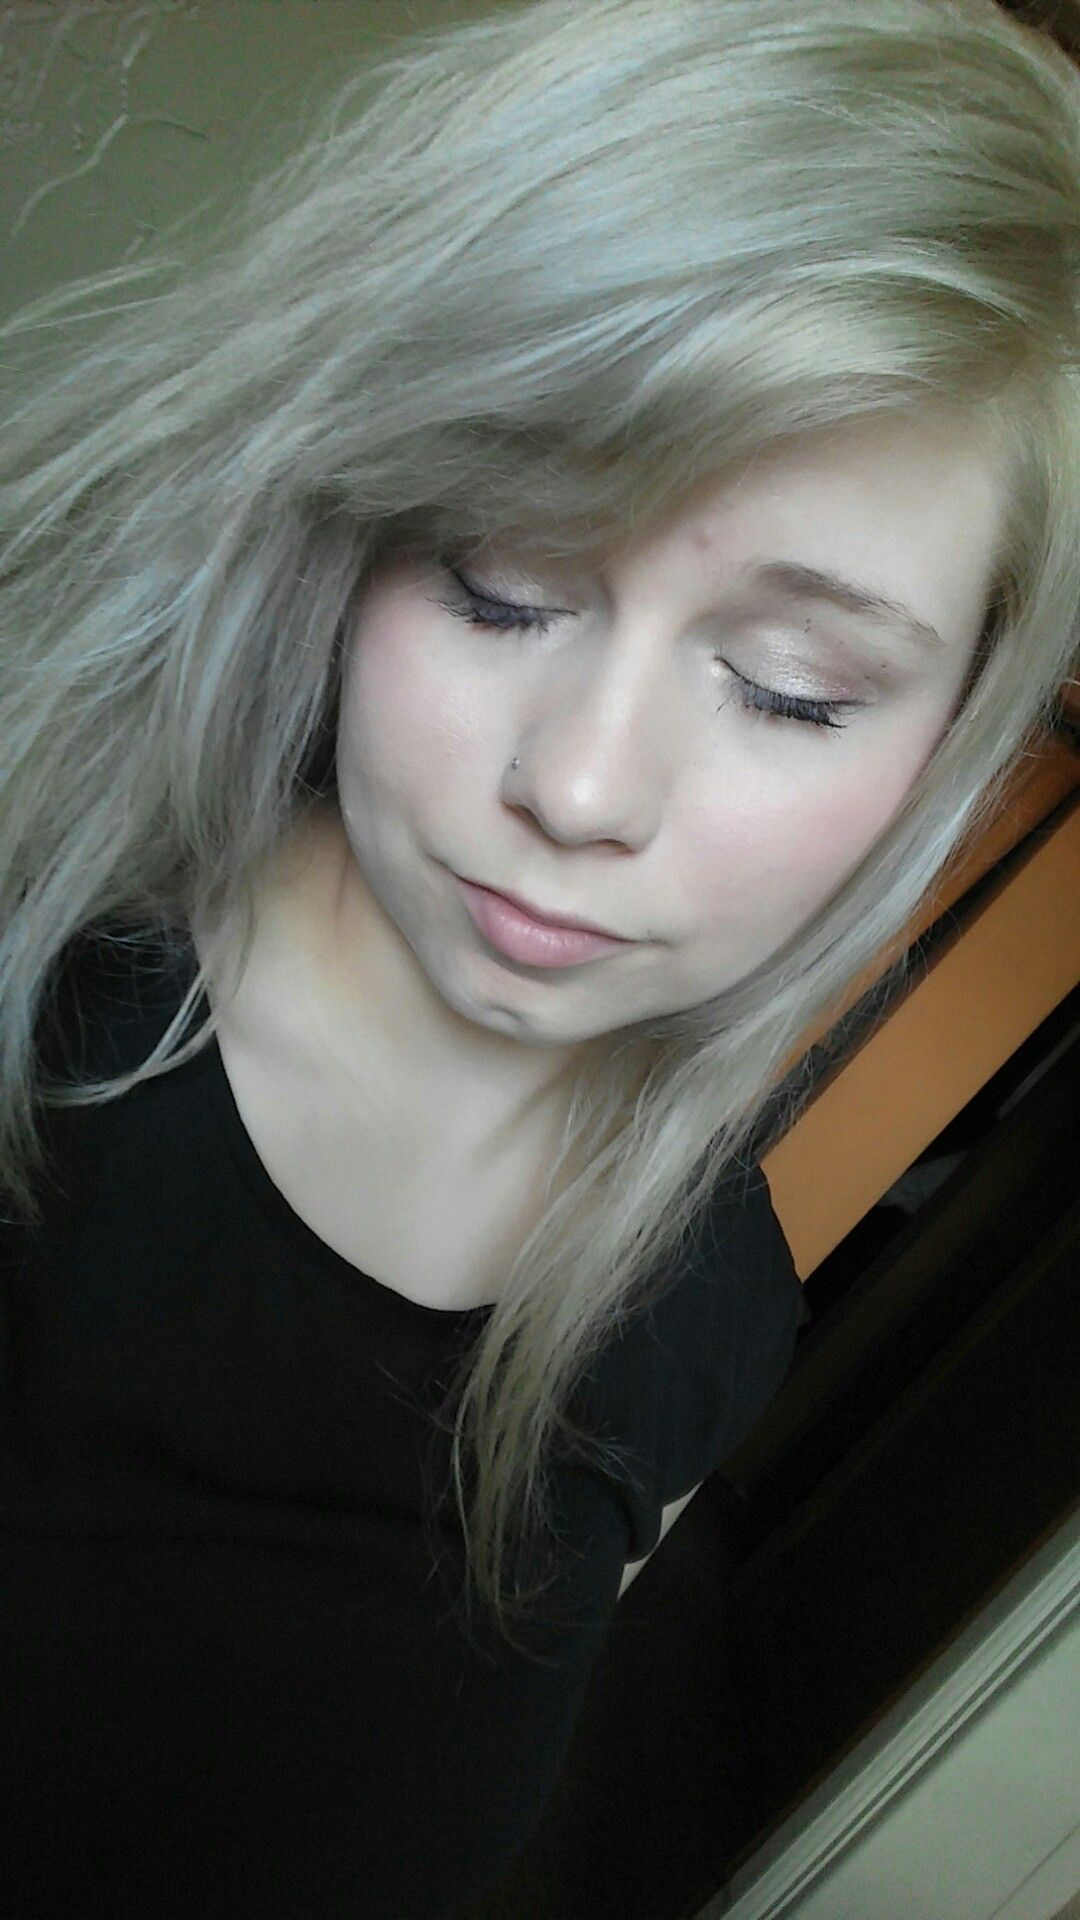 Unstyled silver and ash blonde blended hair